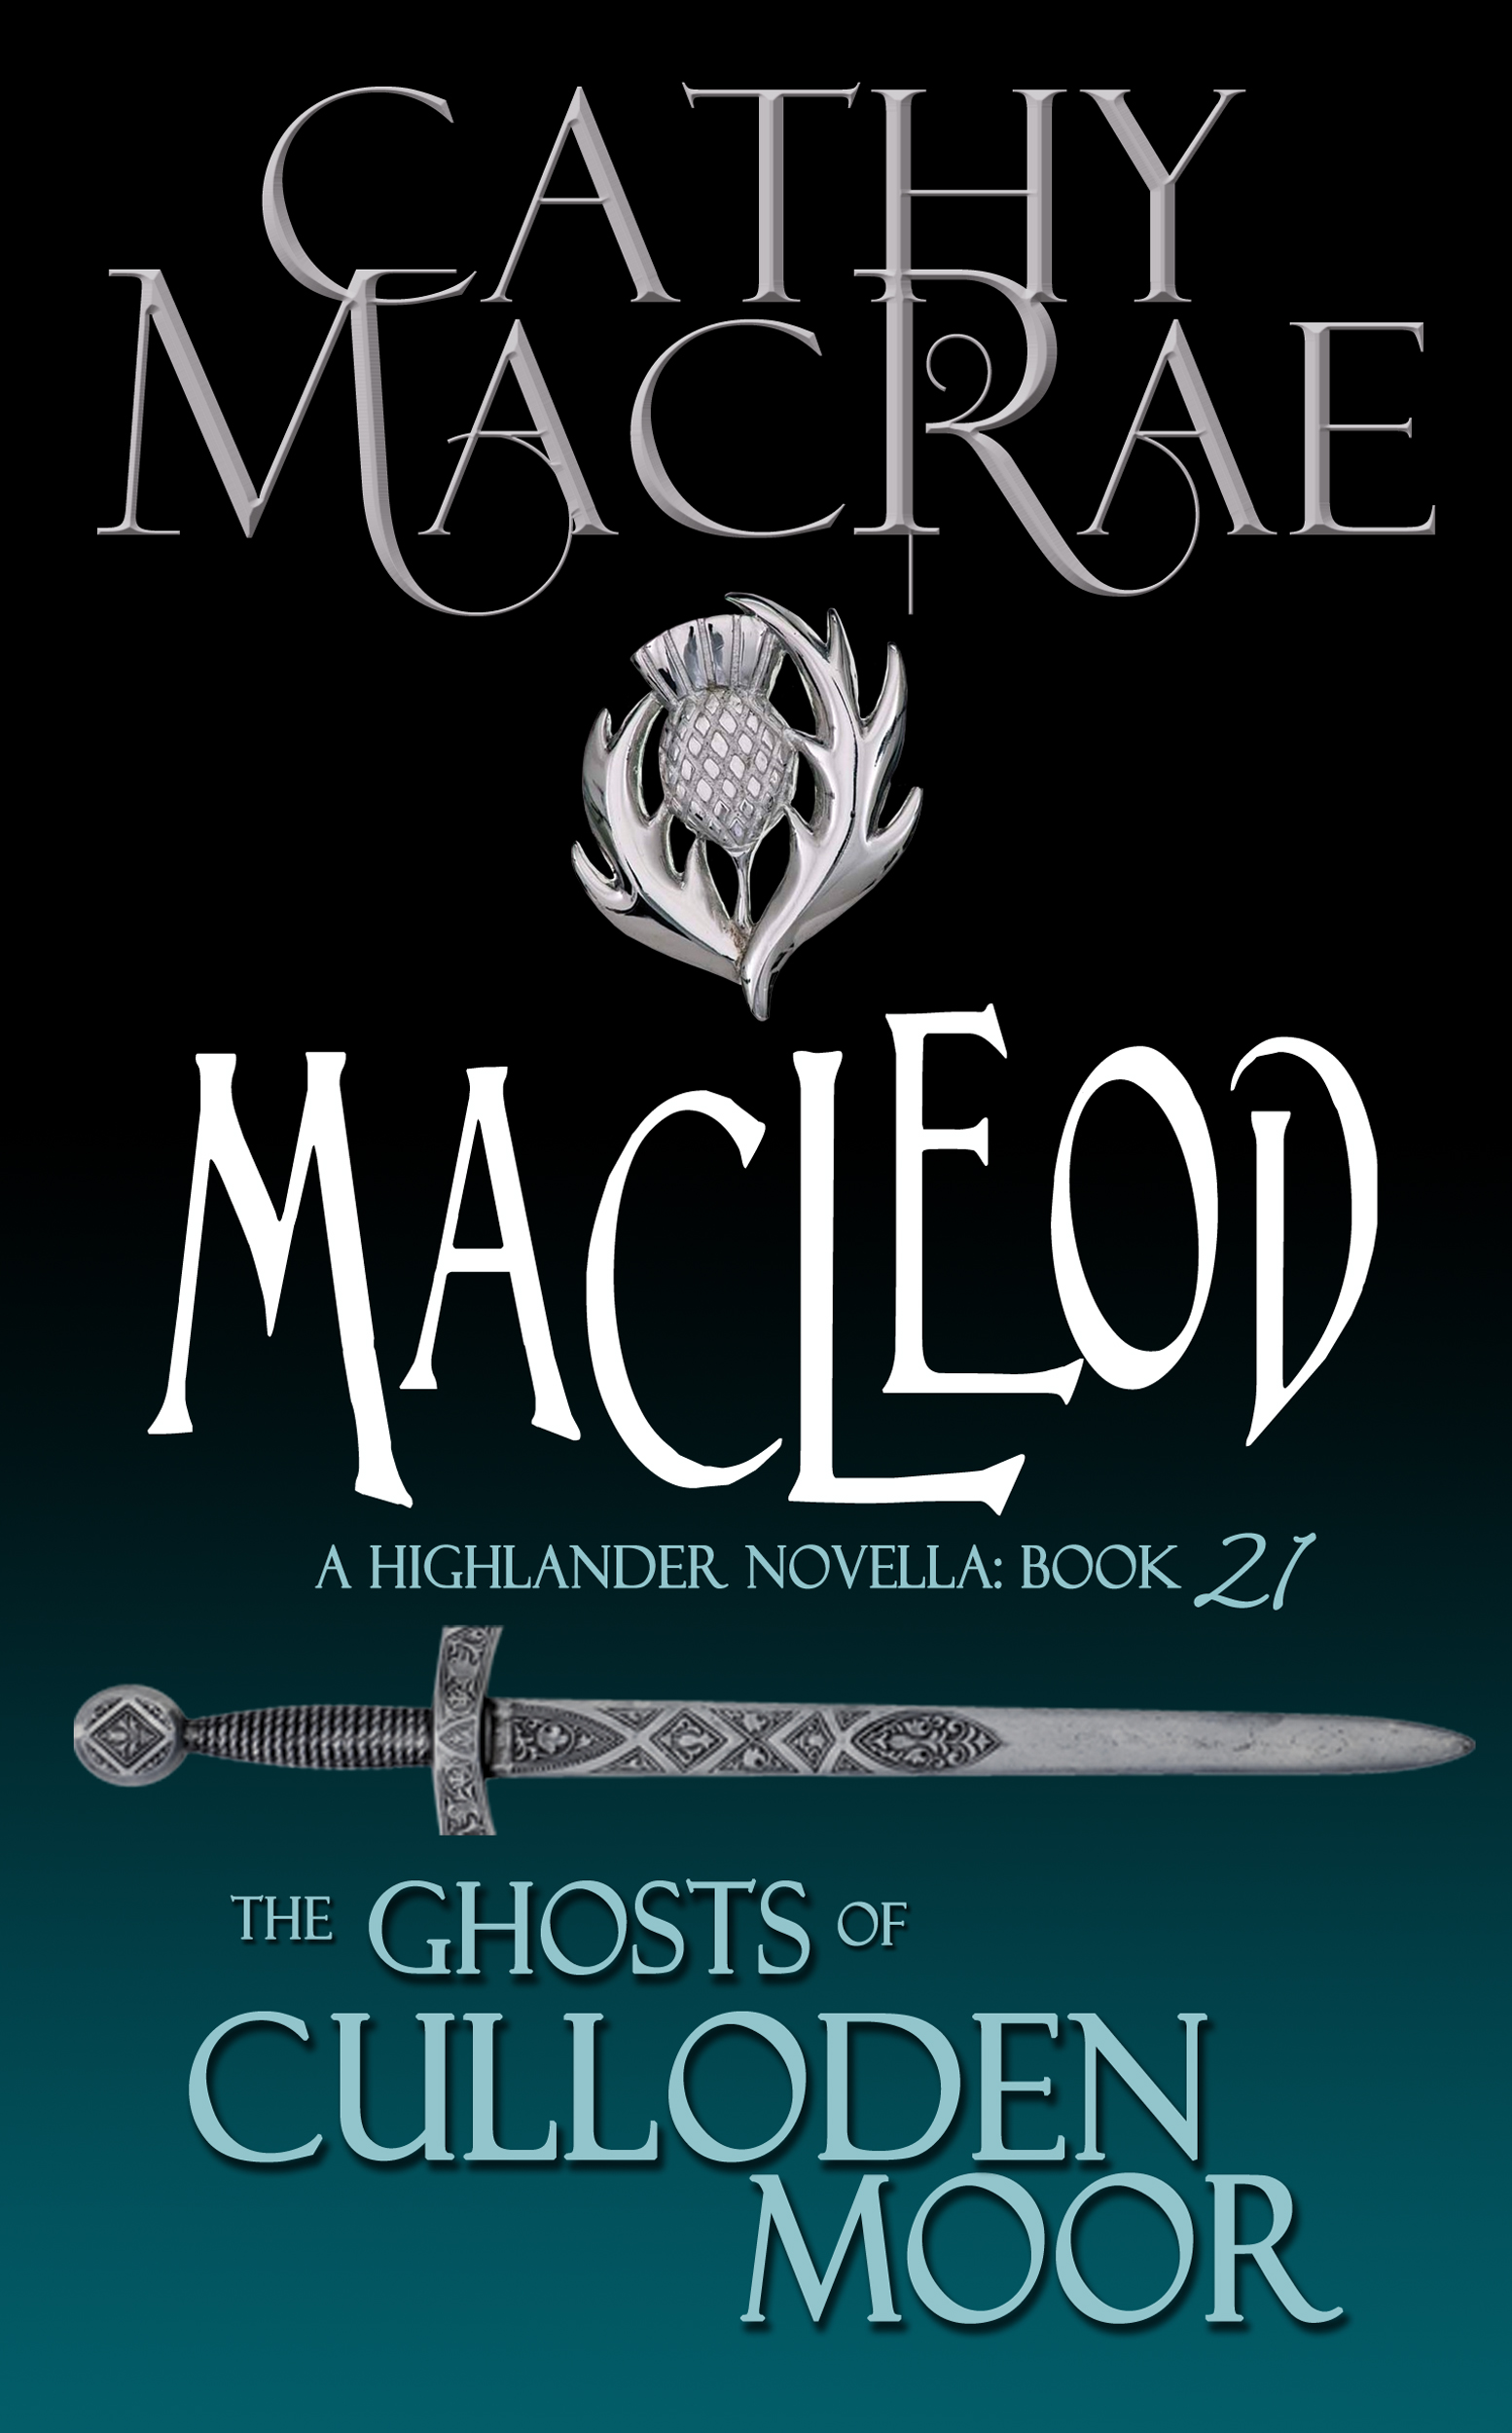 21 MACLEOD - Front Cover (for Amazon)